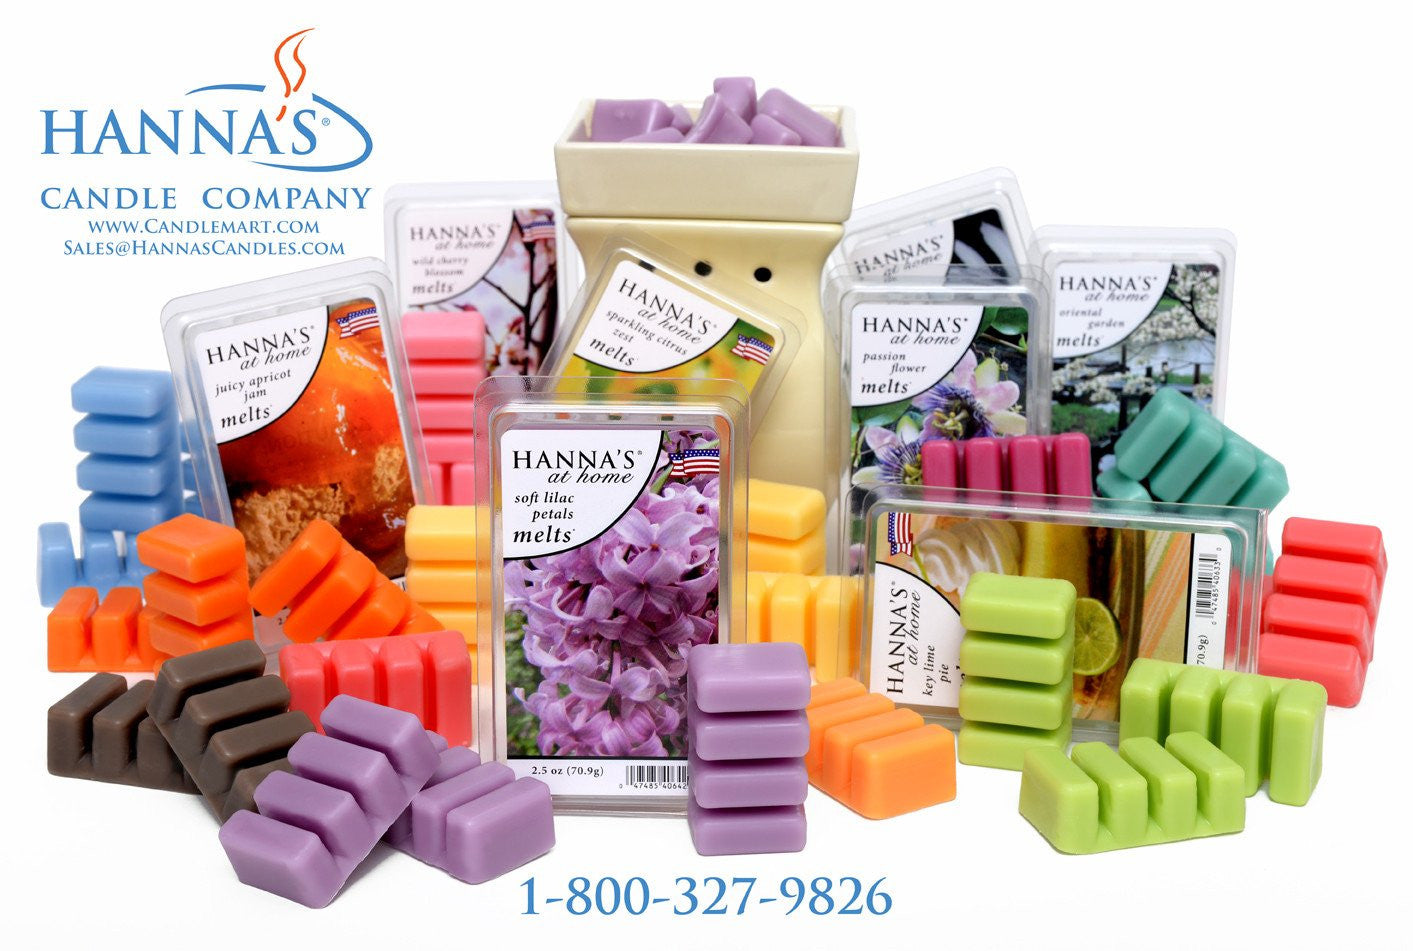 Black Sands Scented Wax Melts Melts Candlemart.com $ 1.99